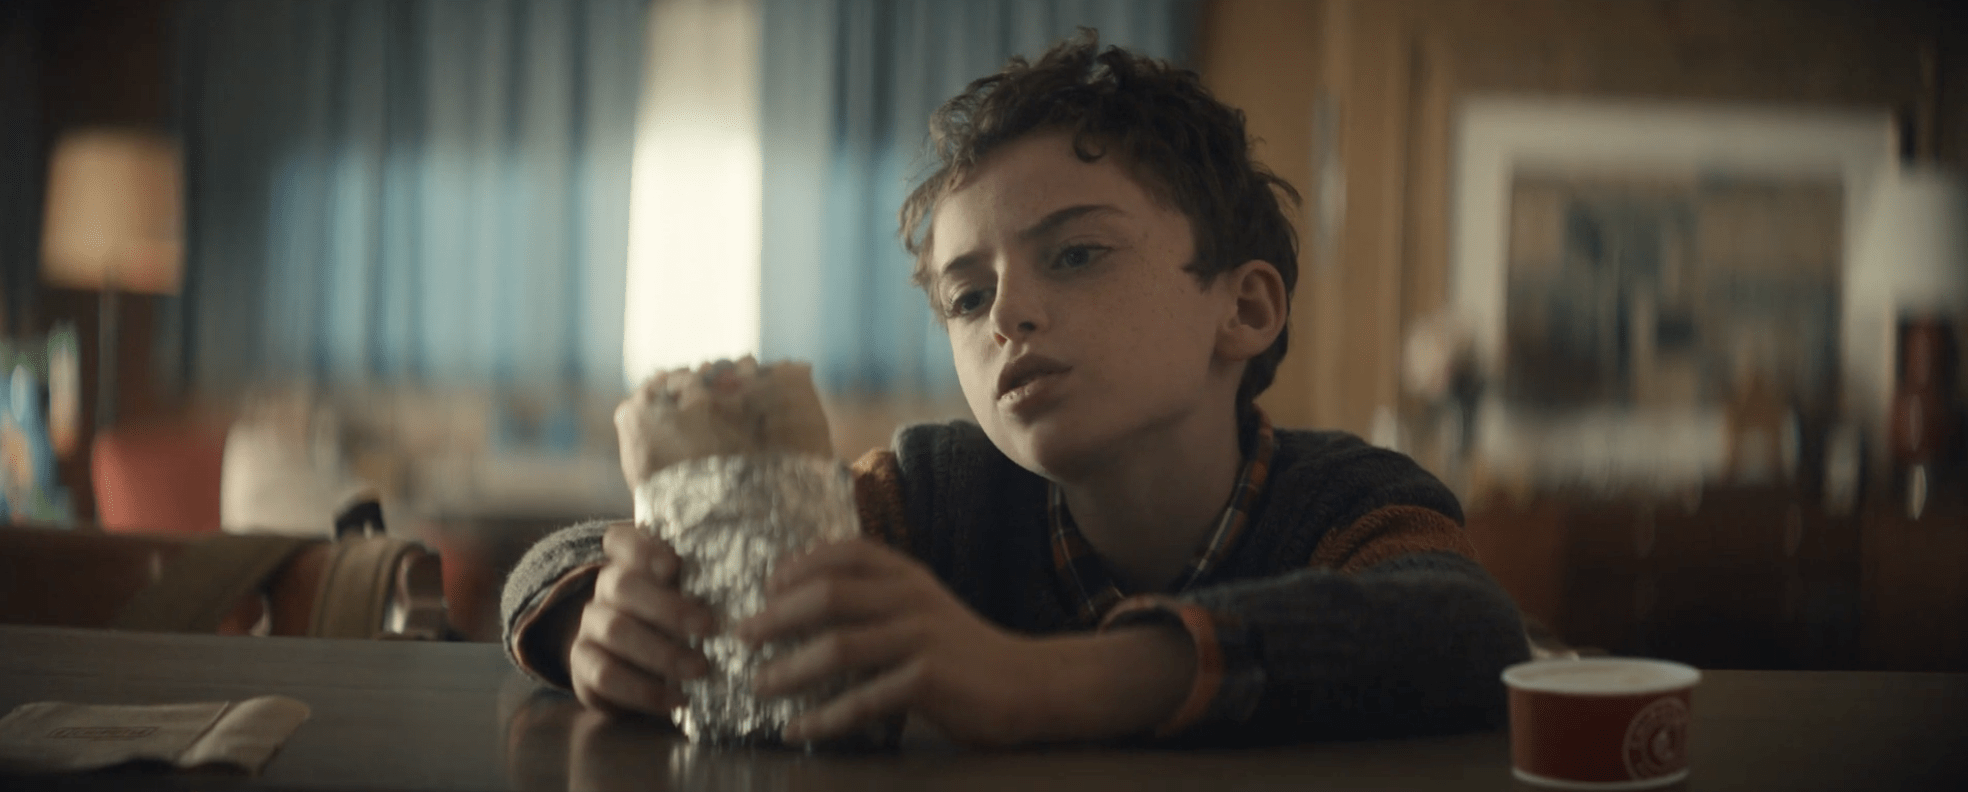 09a4faa7 e2ed 4858 b3e7 91d15a8d91c7 Chipotle Watch all the commercials for Super Bowl 2021 as they are released